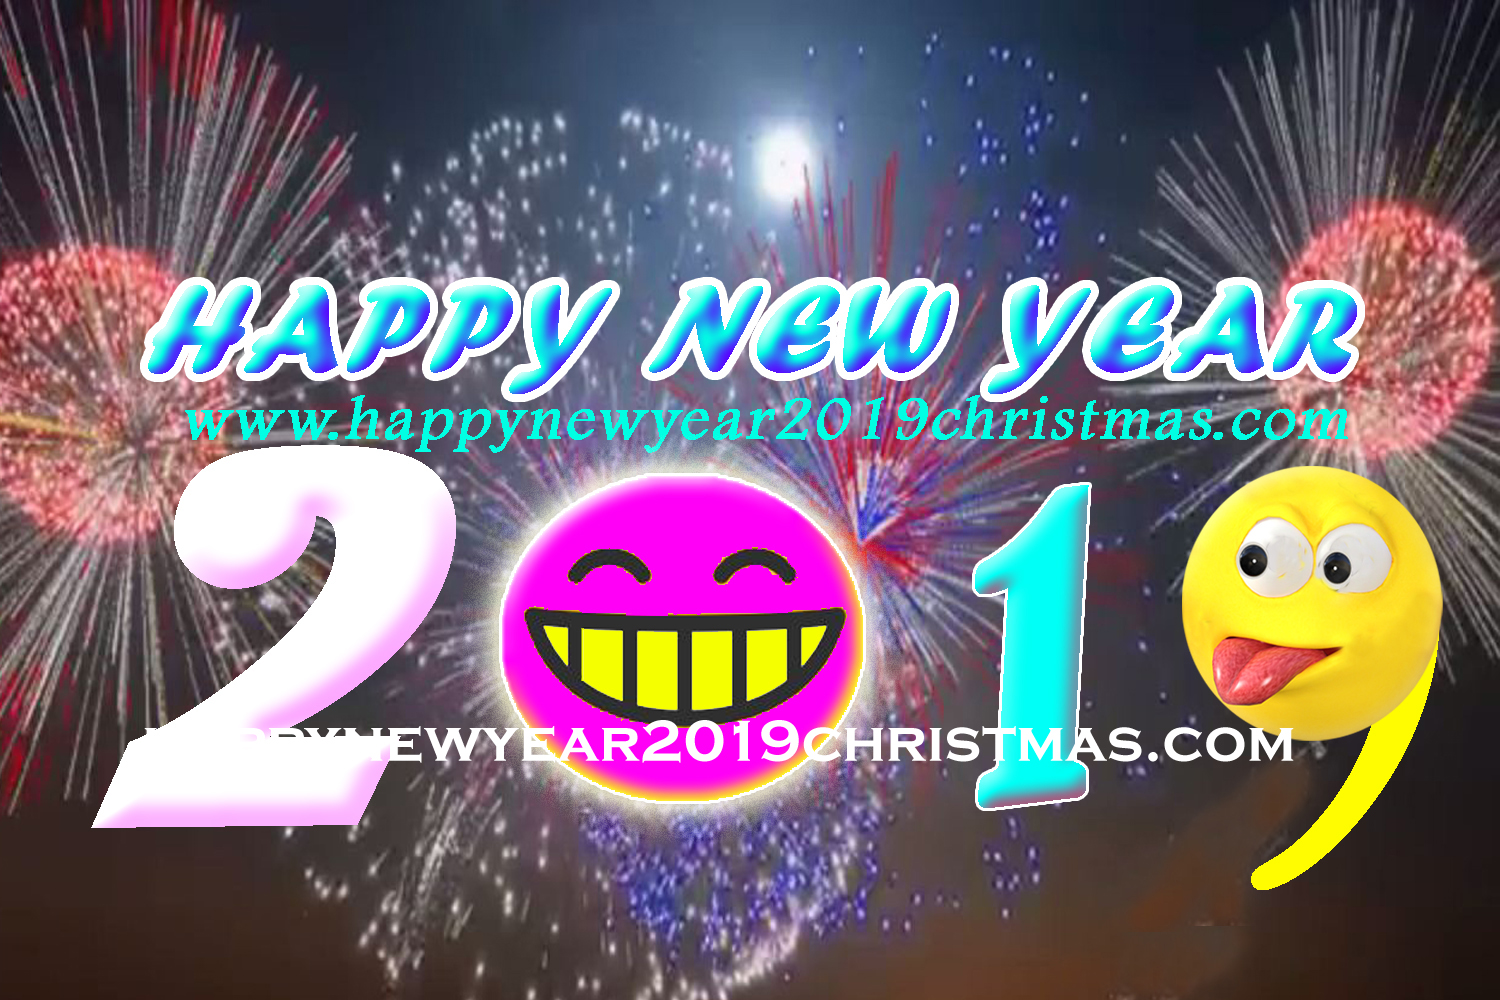 Funny Happy New Year 2019 Wishes | Happy New Year 2019 images ...